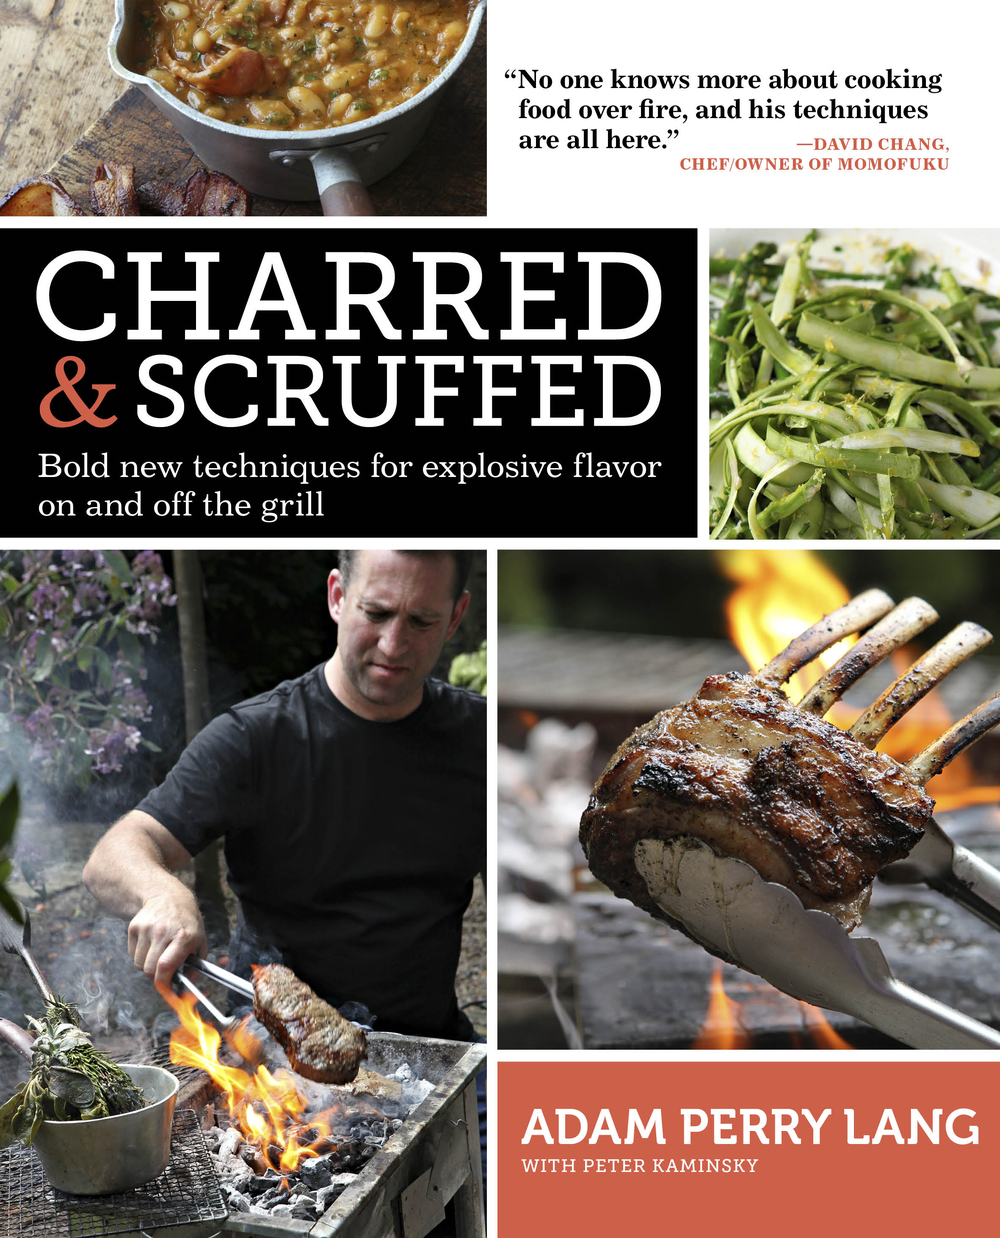 Charred & Scruffed by Adam Perry Lang